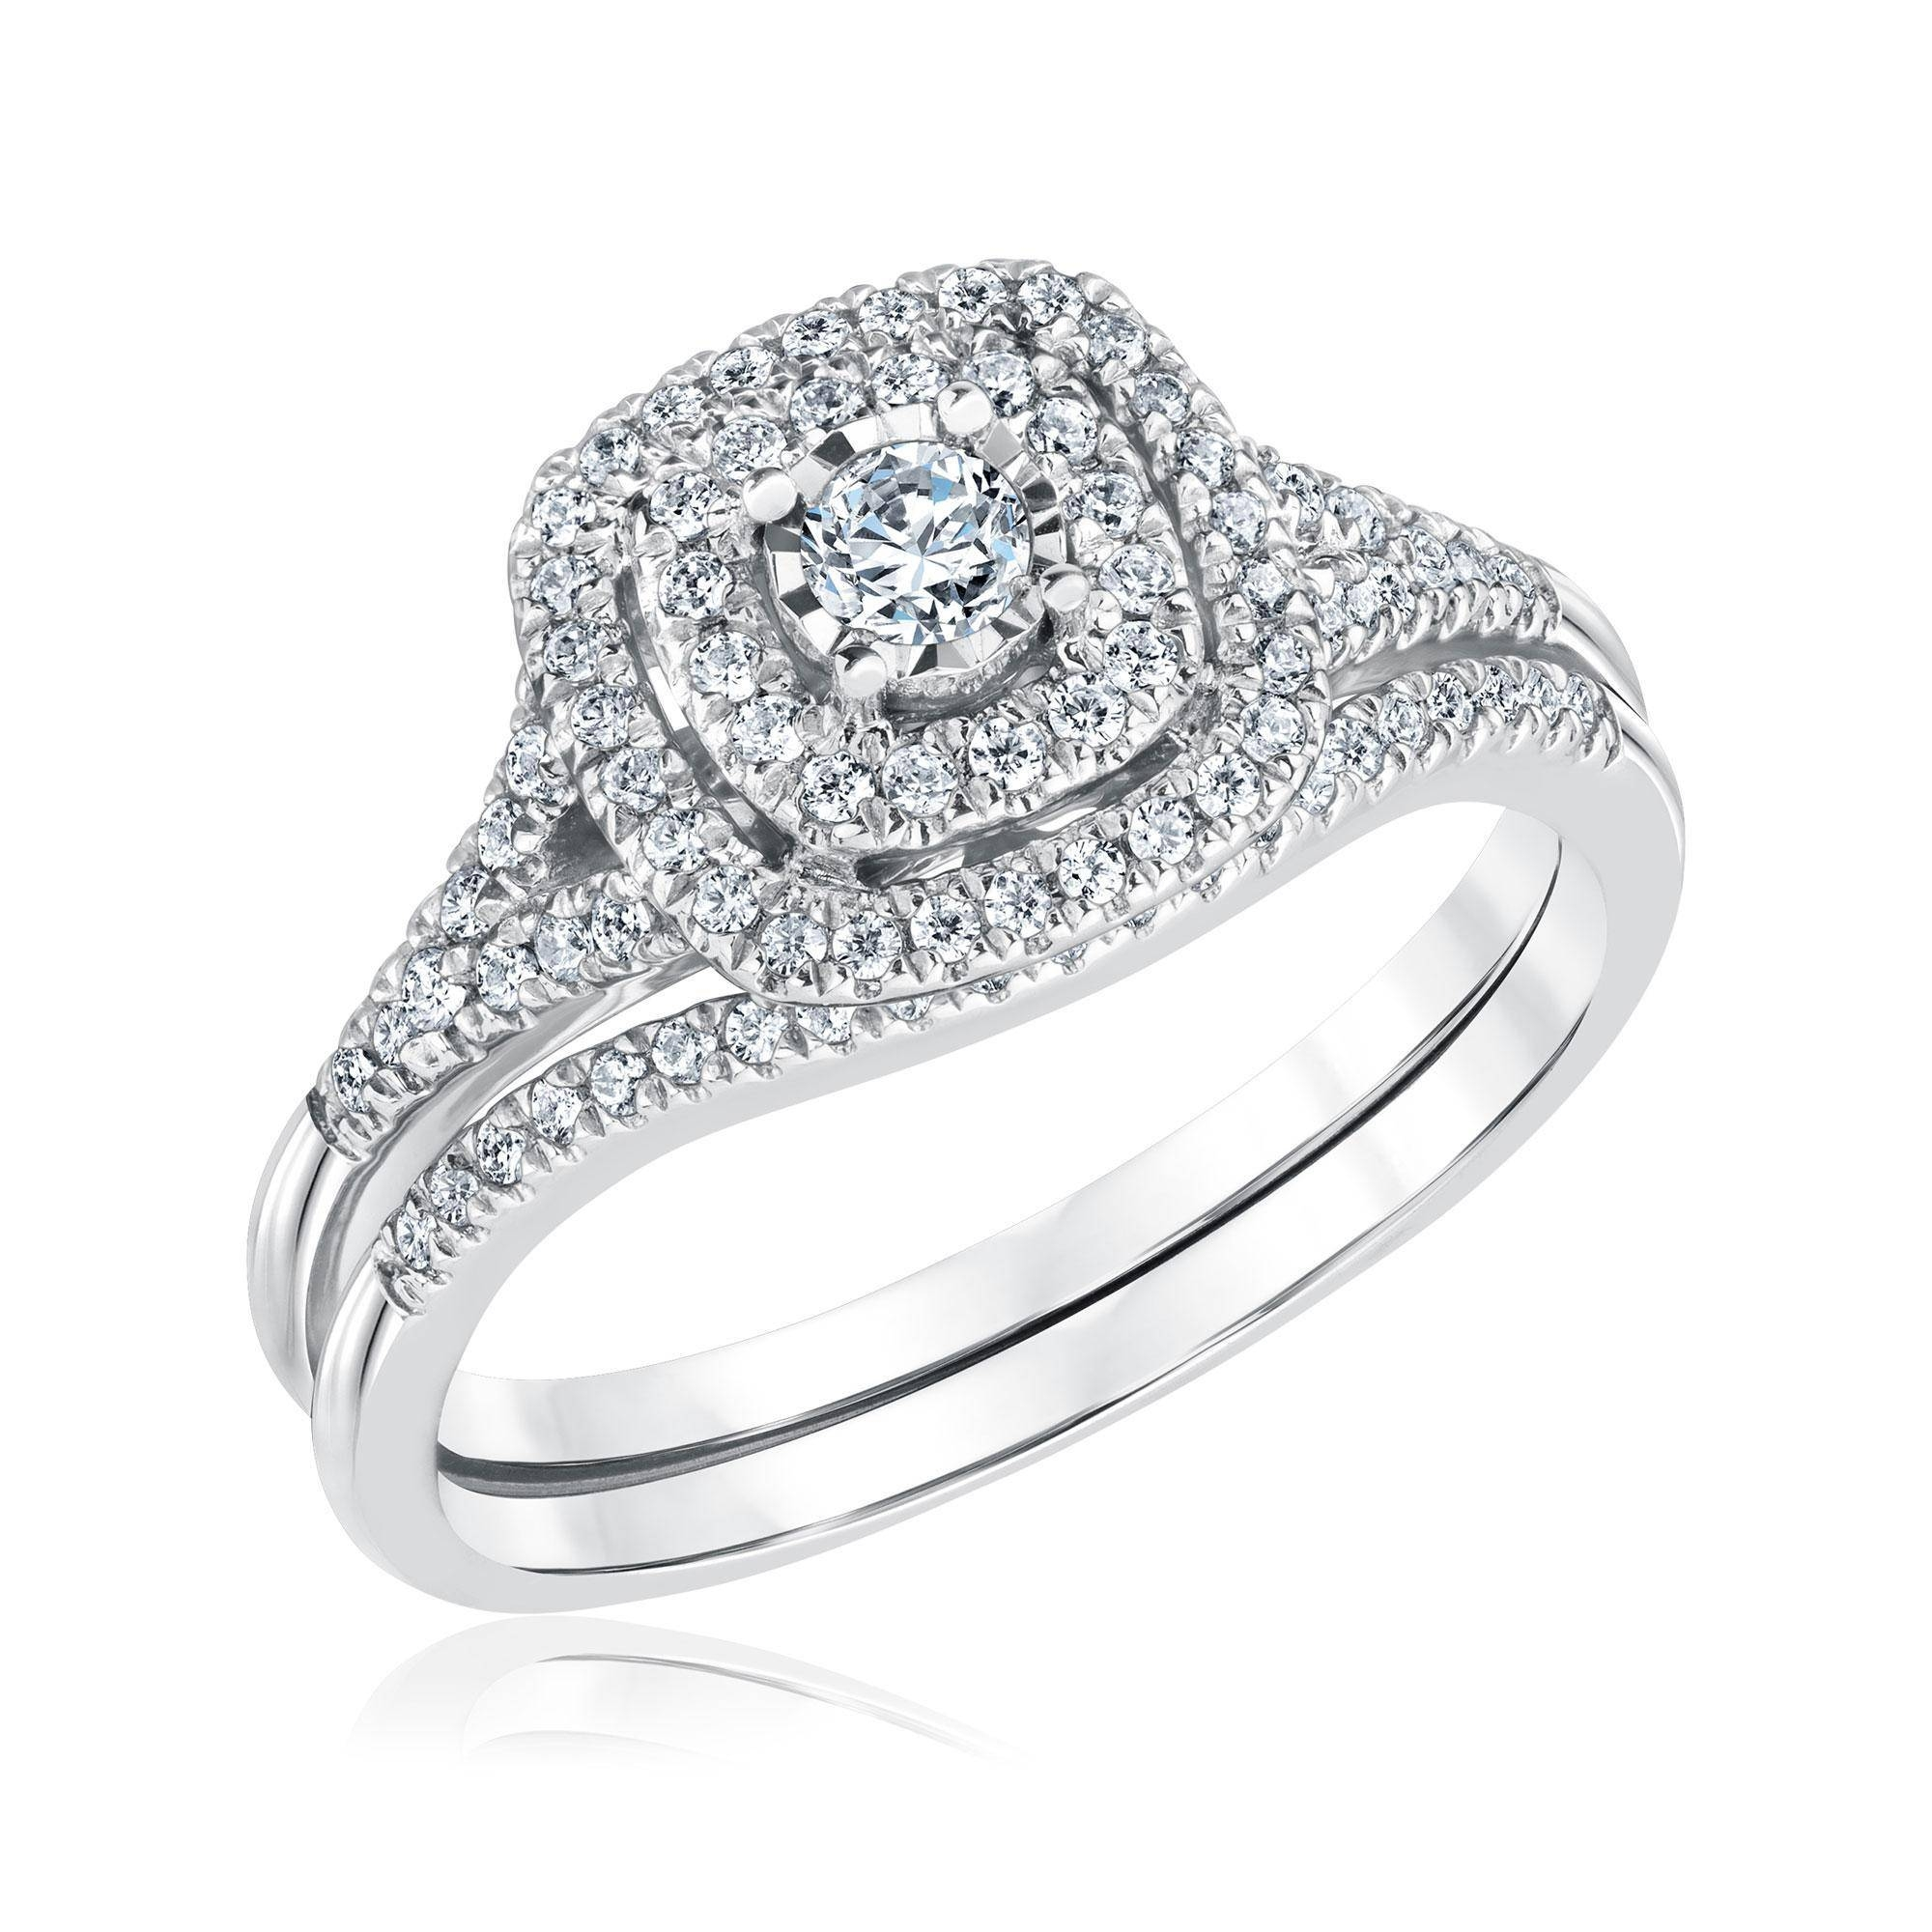 Engagement Rings : Stunning Halo Engagement Rings Cheap This For Engagement Rings Under (View 6 of 15)